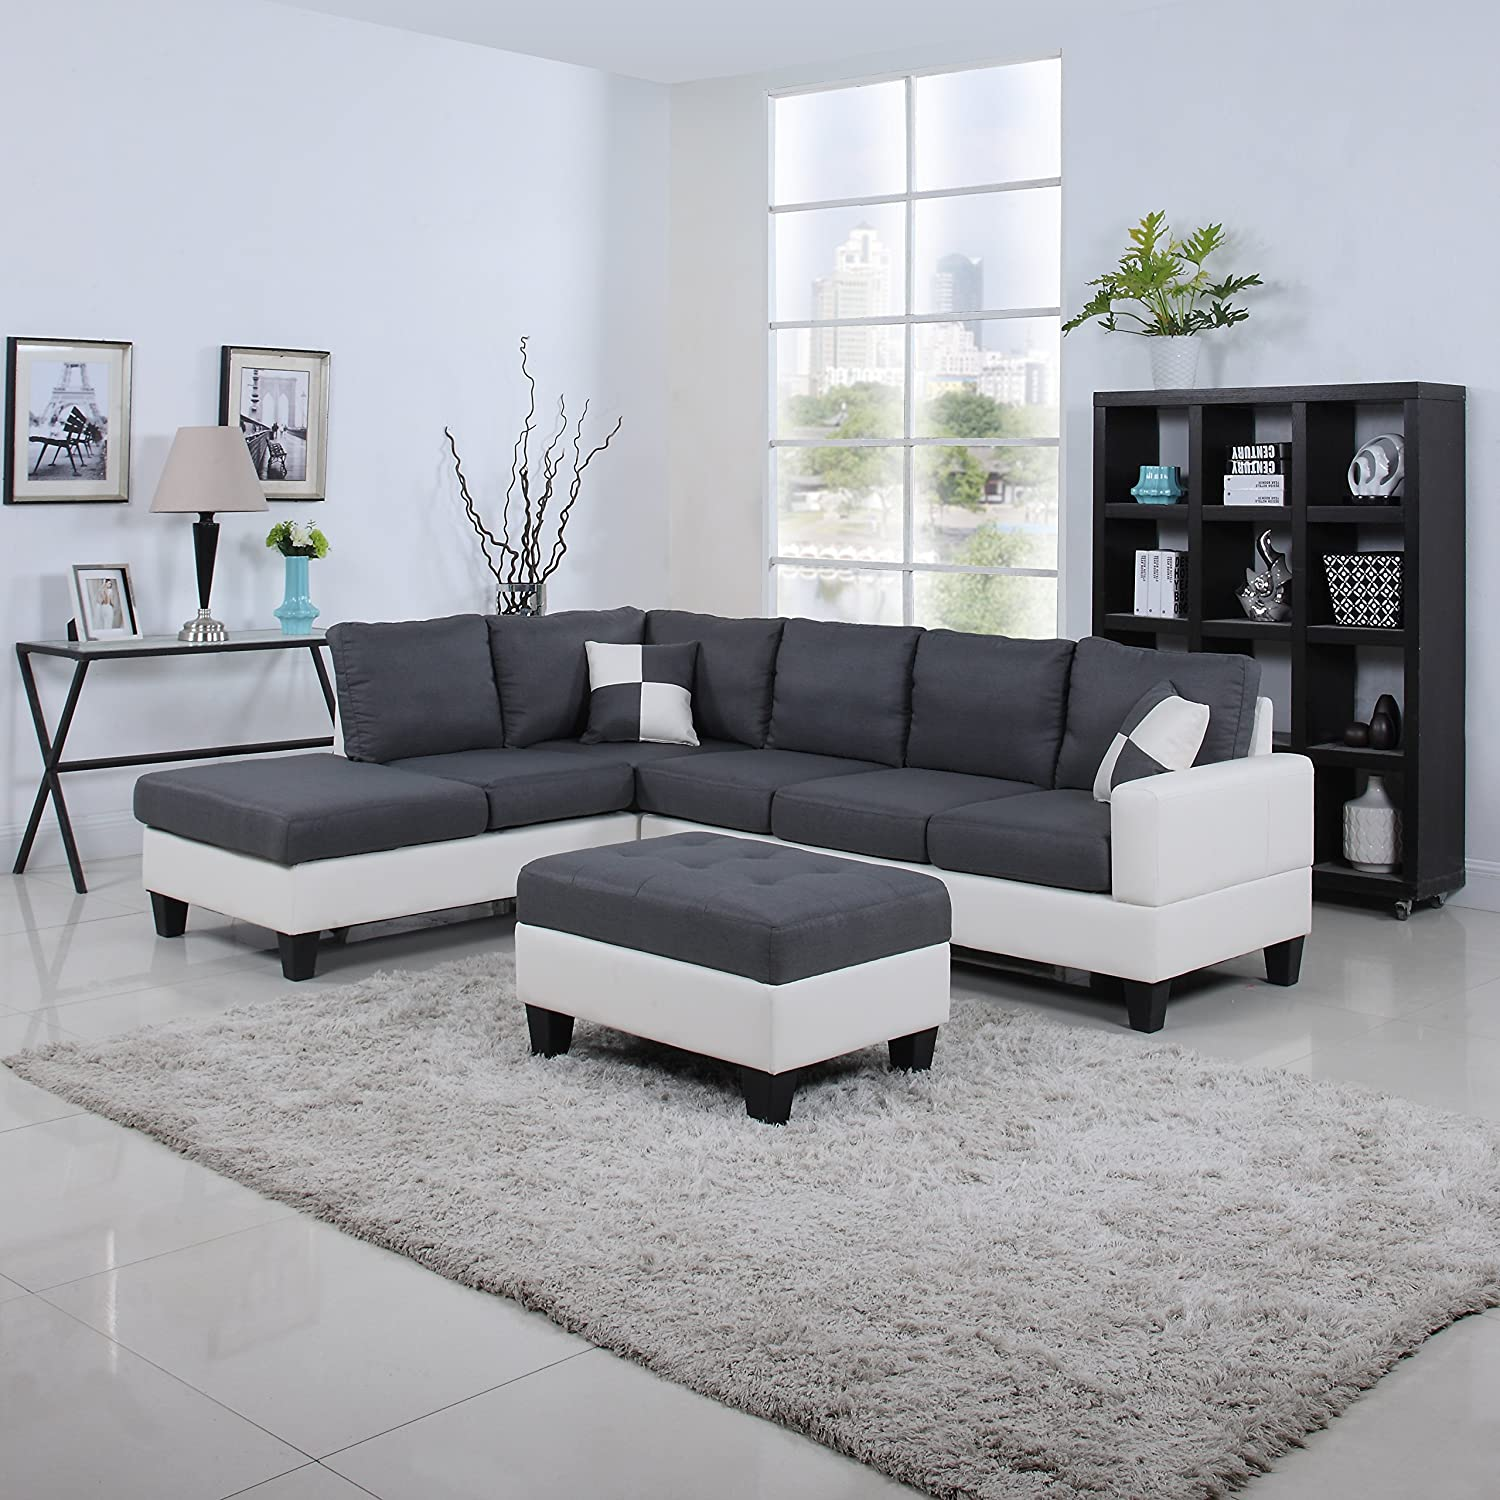 Gray leather living room furniture Living rooms with leather sofas